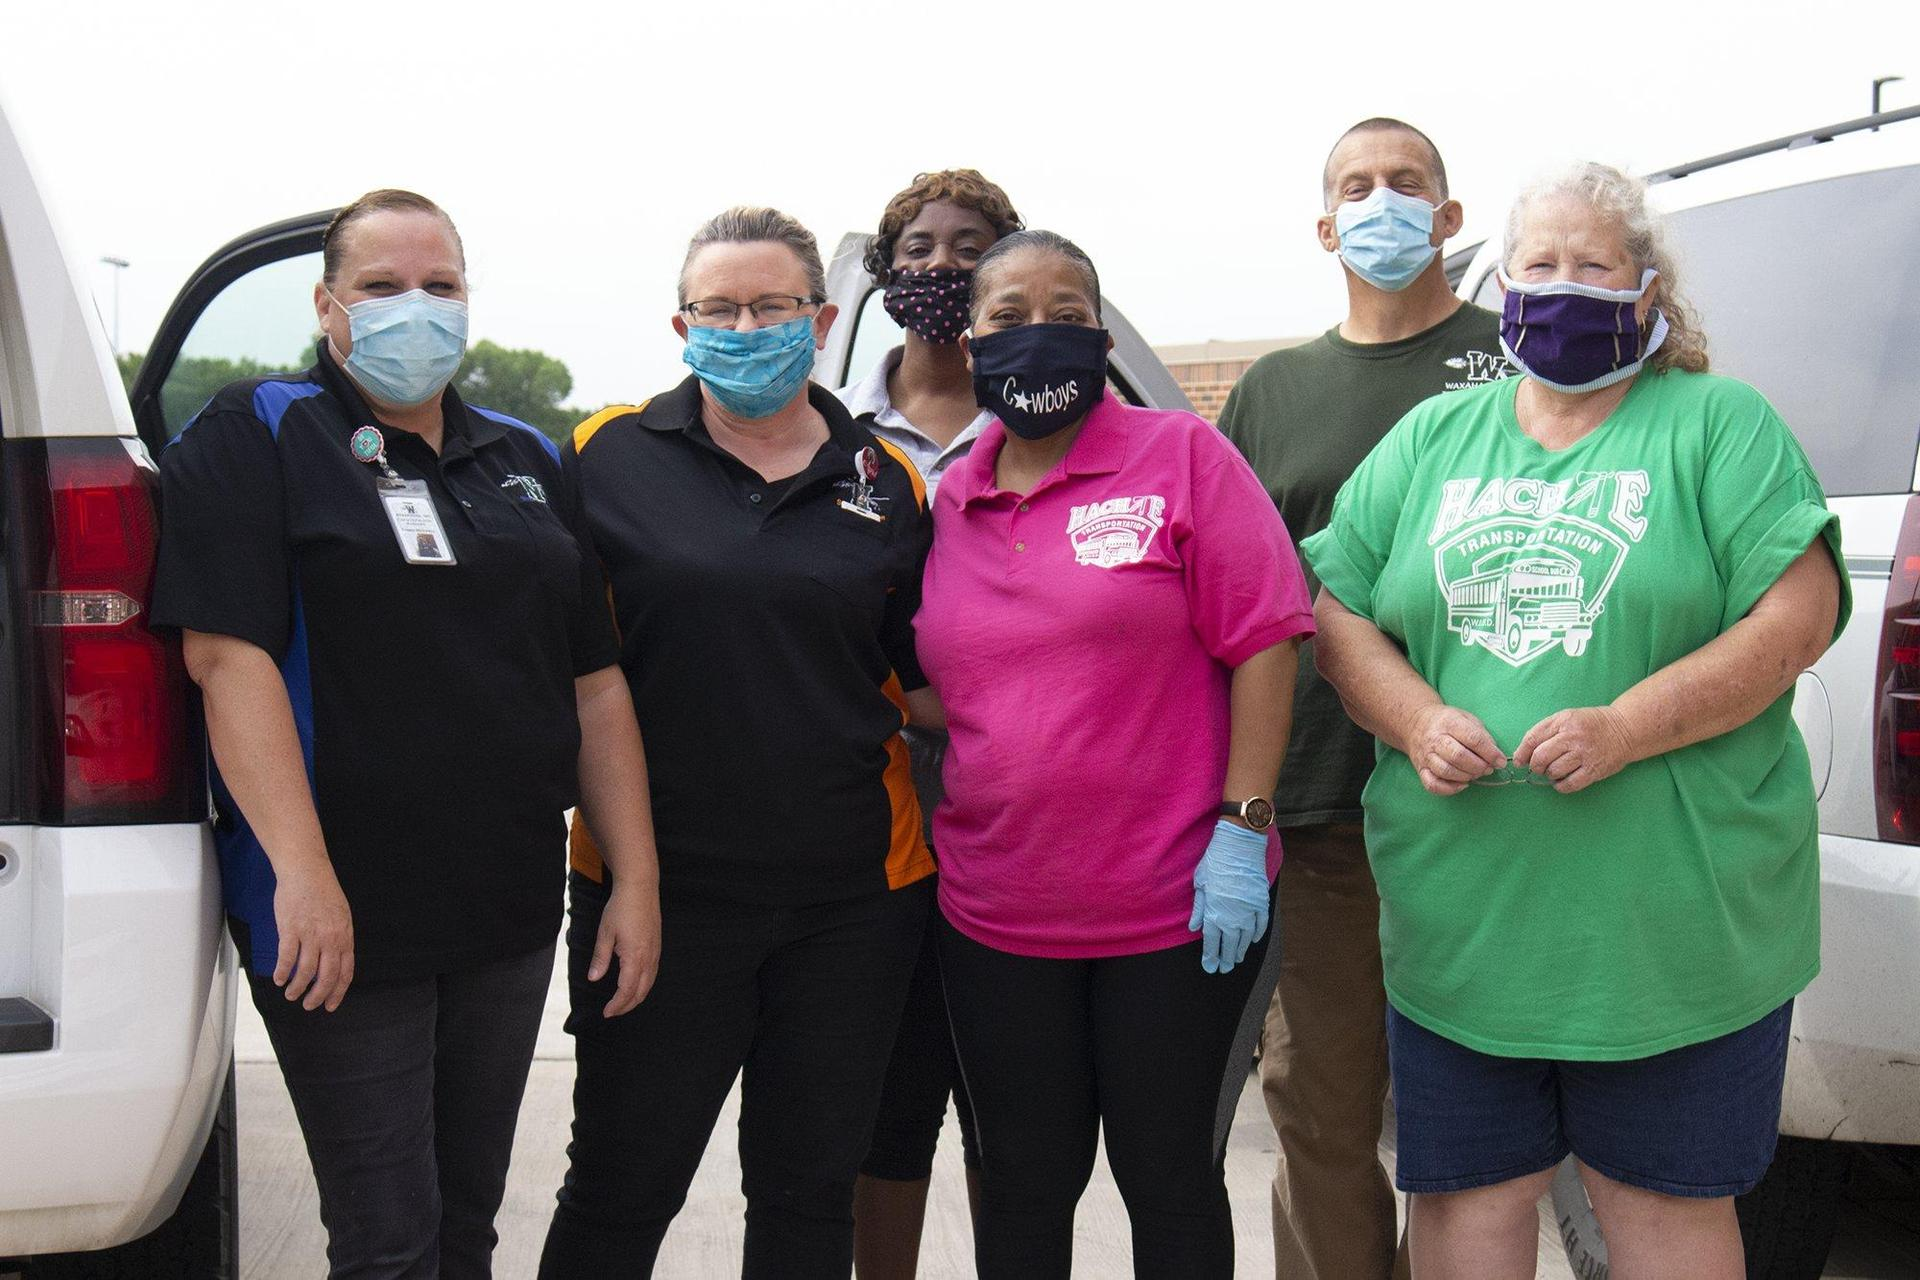 bus drivers posing together wearing face masks